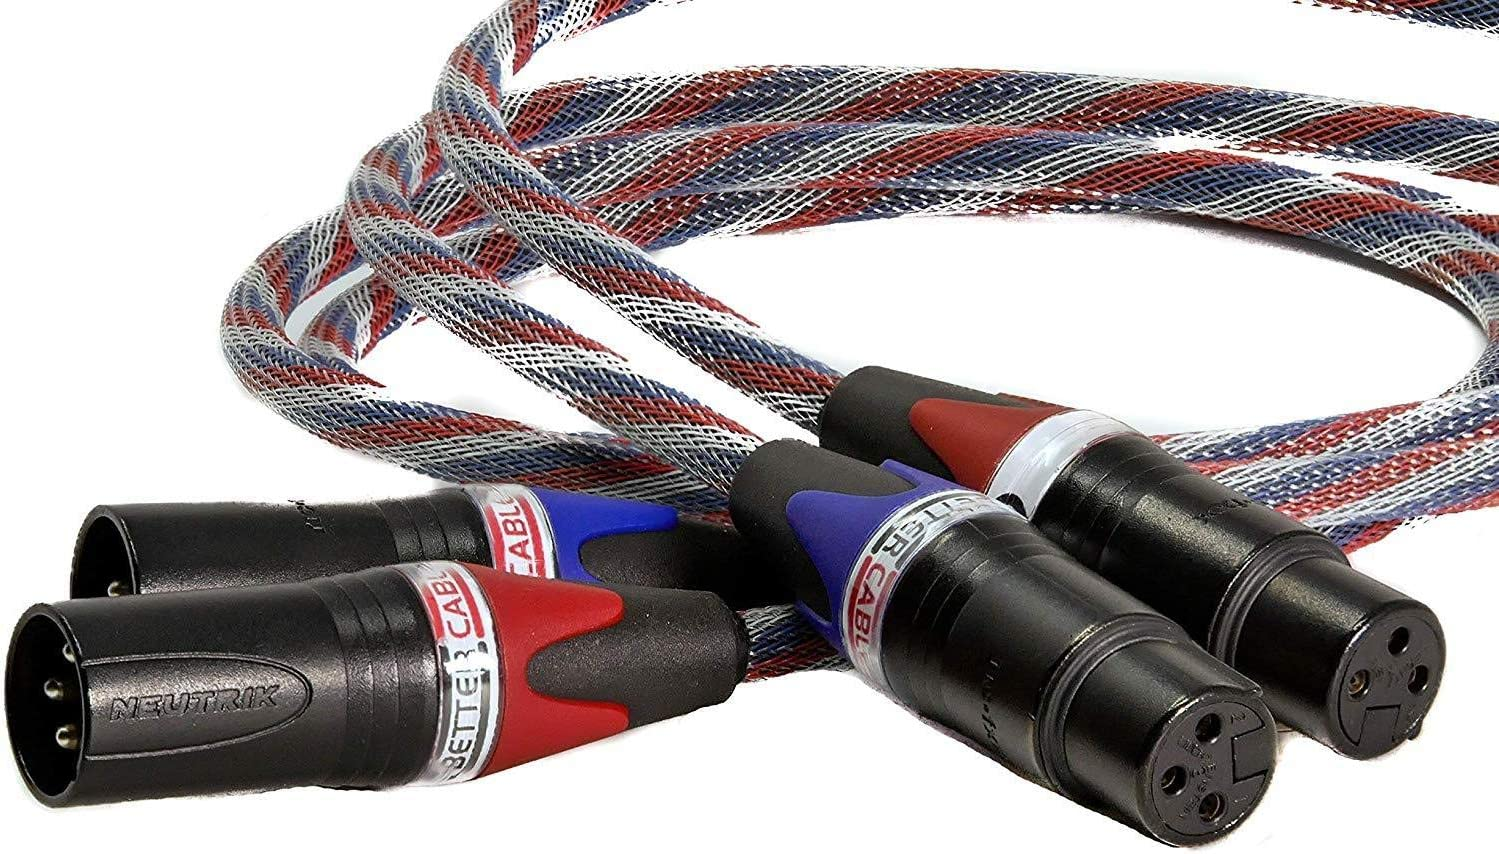 Better Cables Silver Serpent Patriot Edition Balanced XLR Audiophile Audio Cables (Pair - 2 Cables) - High-End, High-Performance, Silver/Copper Hybrid, Low-Capacitance - 6 Feet: Home Audio & Theater